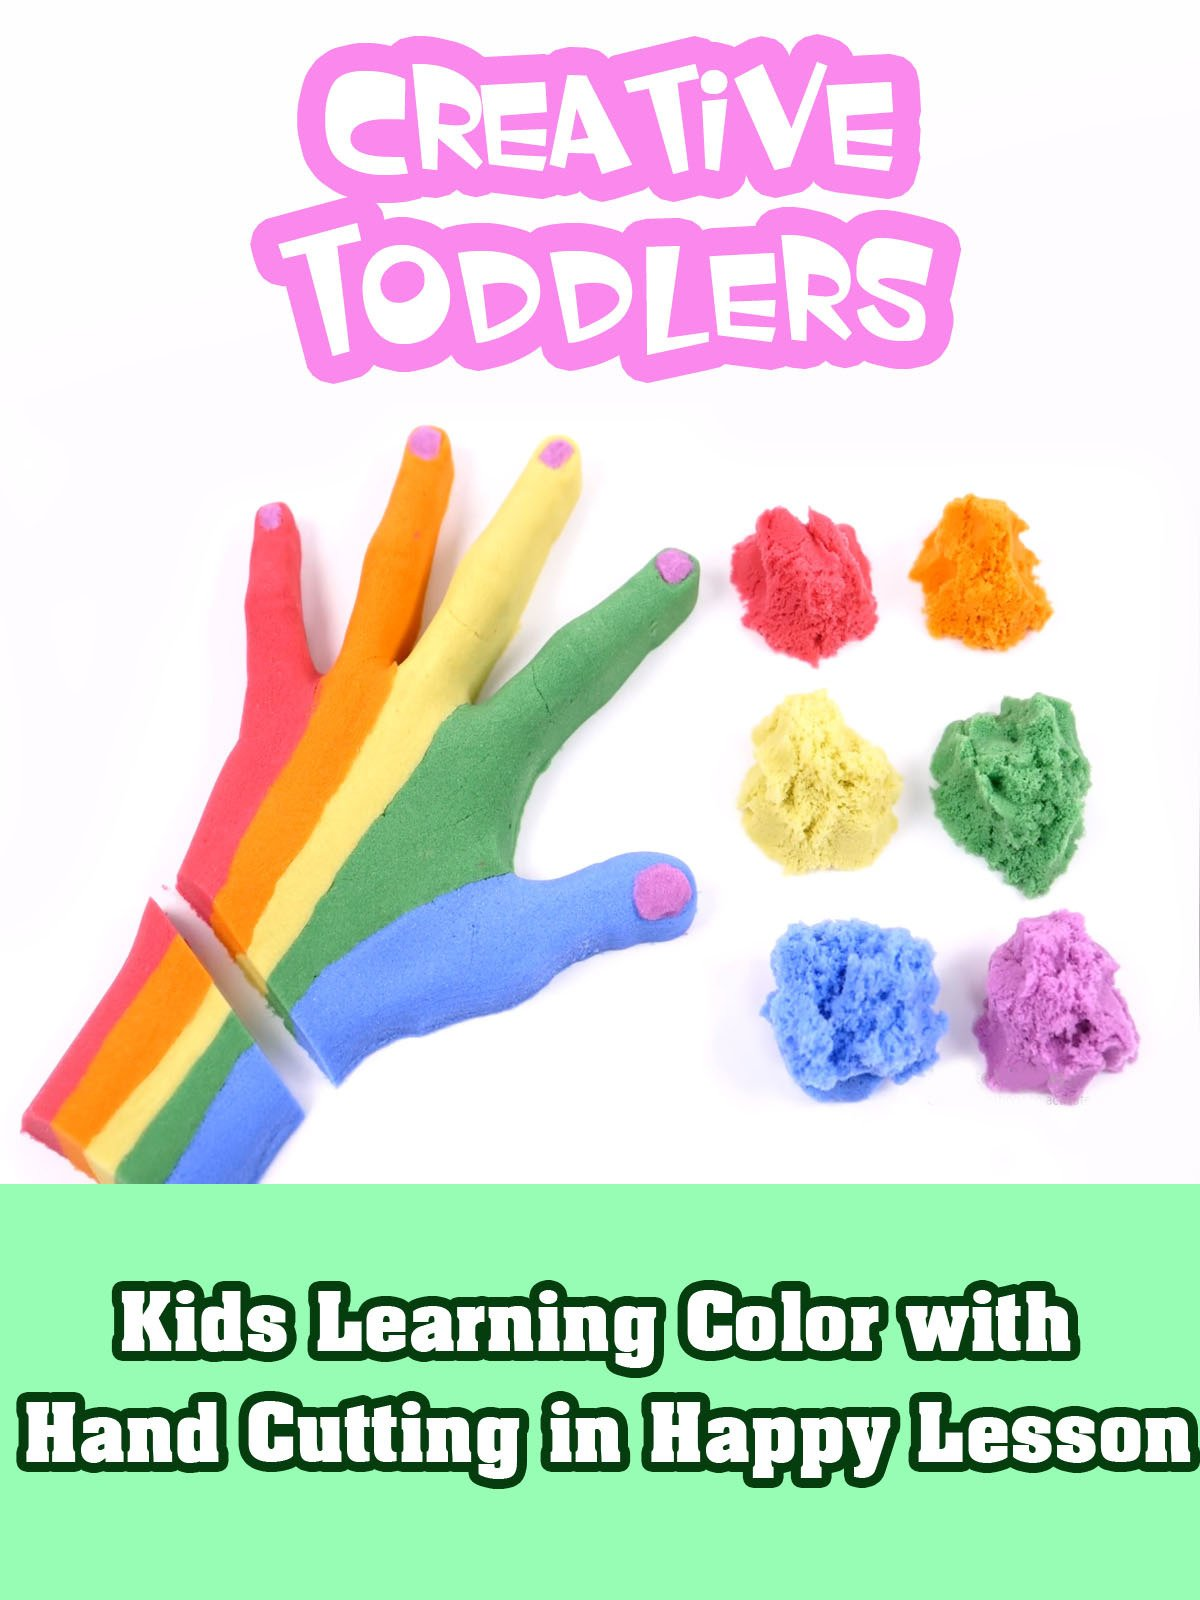 Kids Learning Color with Hand Cutting in Happy Lesson